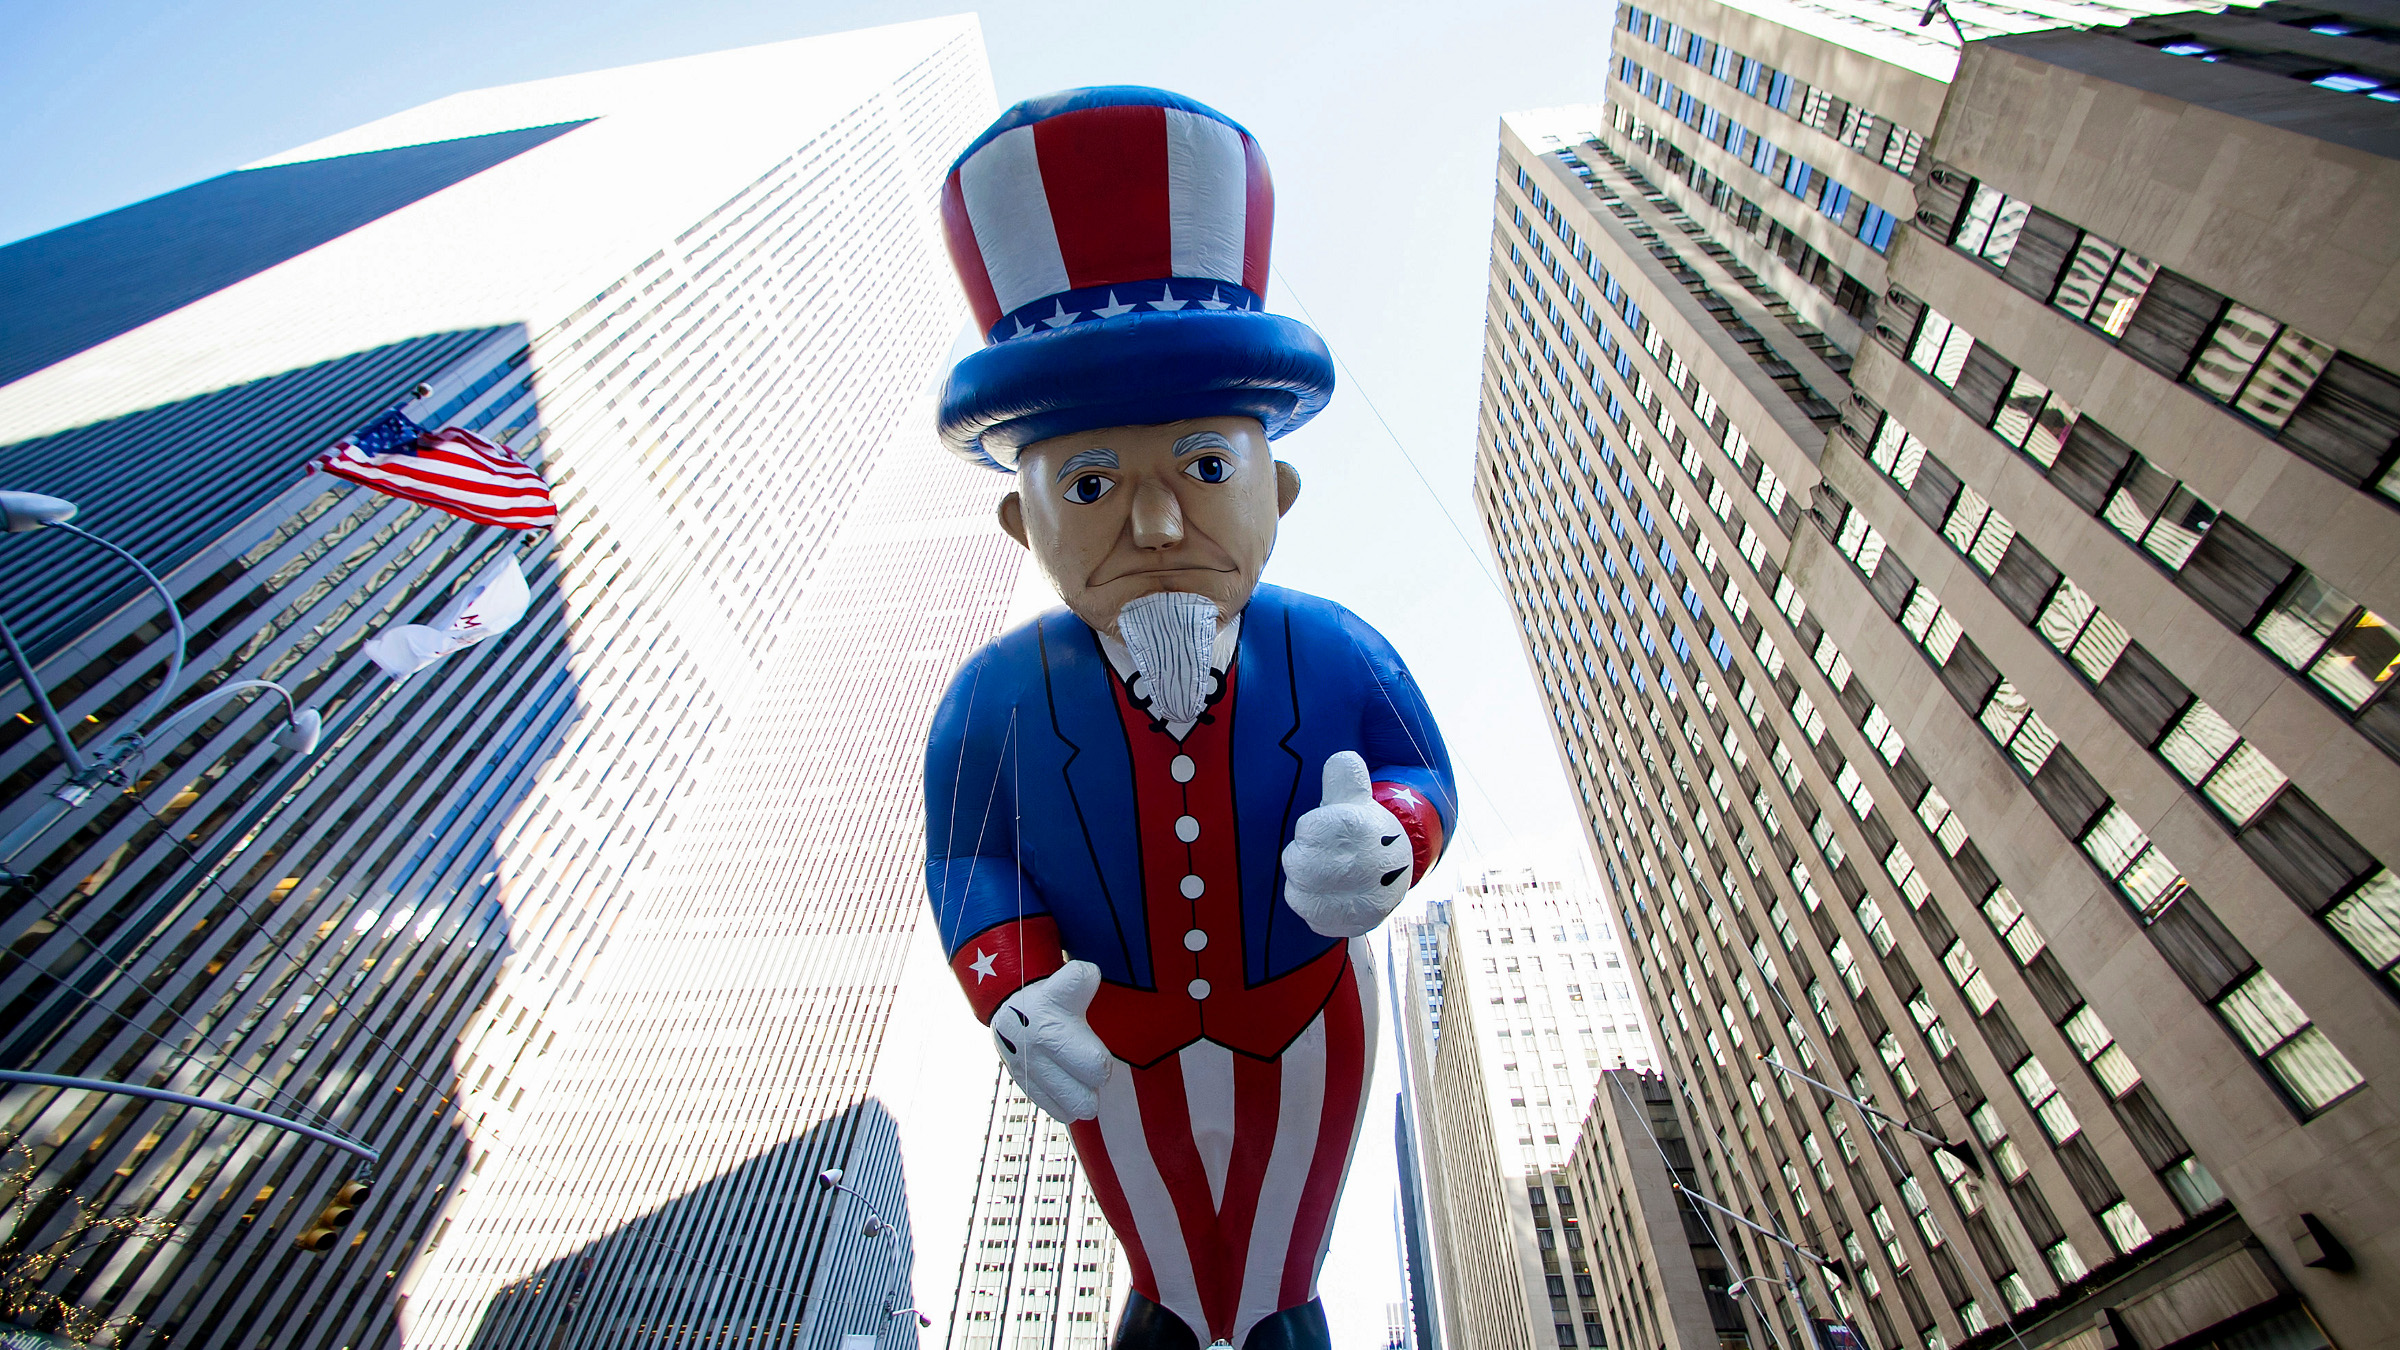 An Uncle Sam balloon floats down Sixth Avenue during the 87th Macy's Thanksgiving Day Parade in New York November 28, 2013.